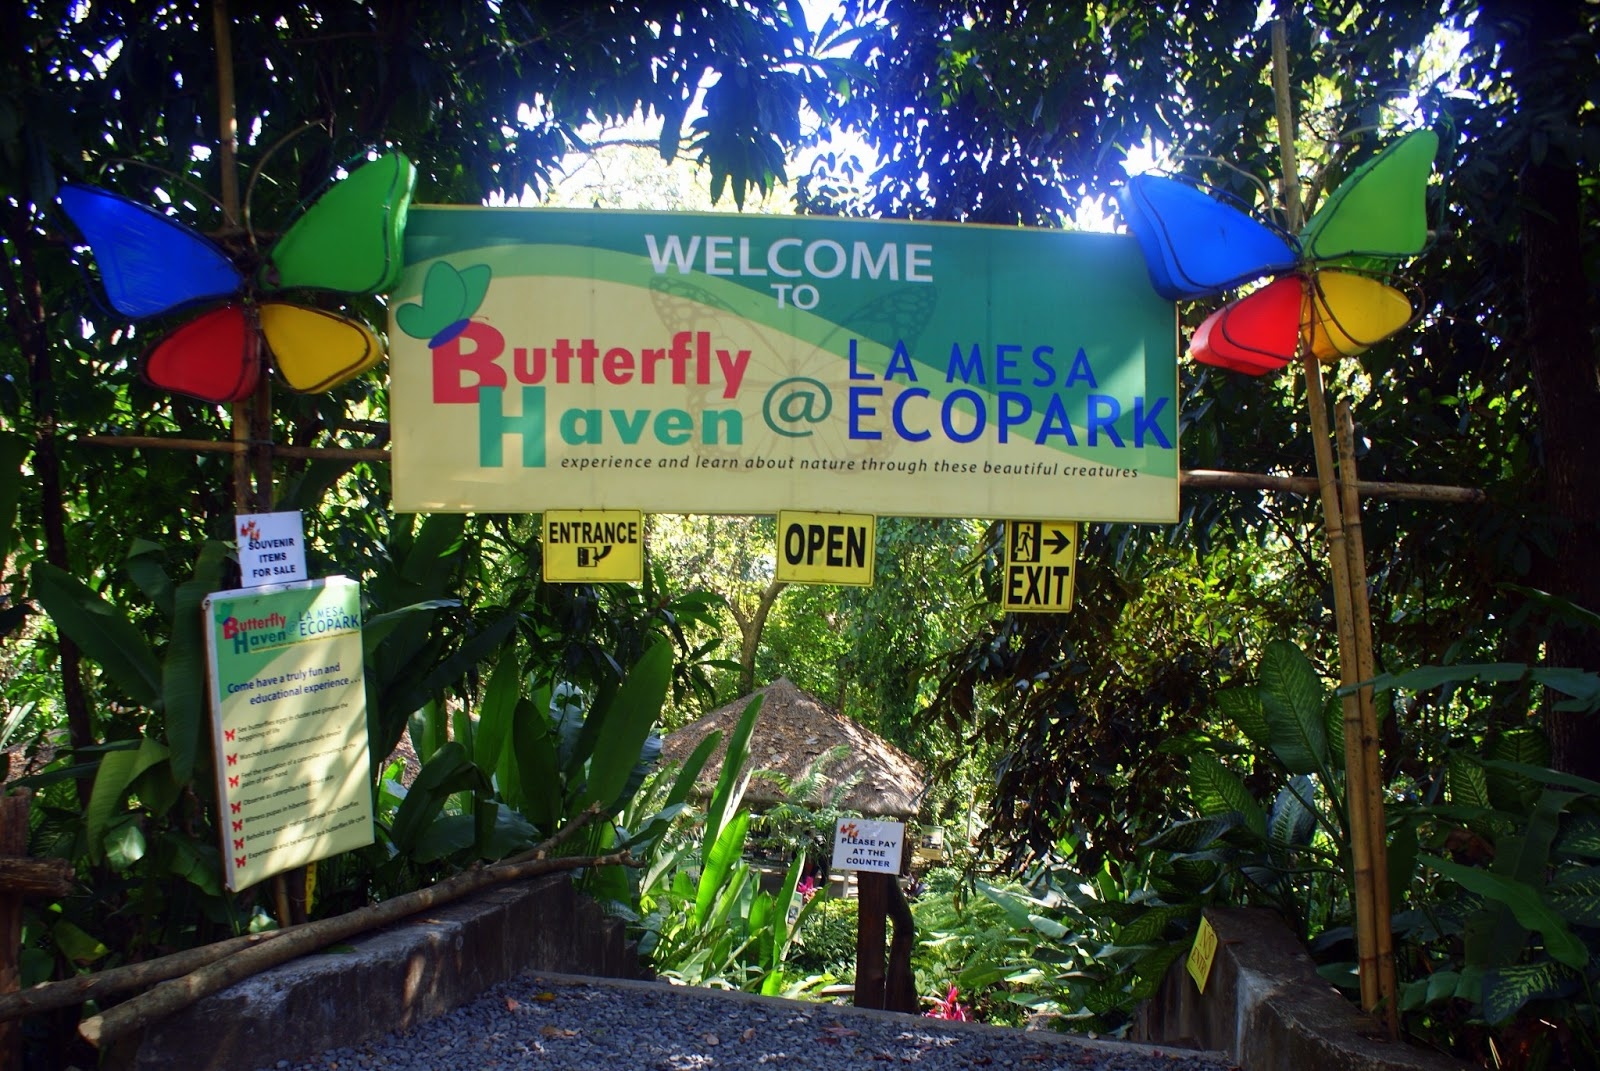 Butterfly sanctuary - La mesa eco park swimming pool photos ...